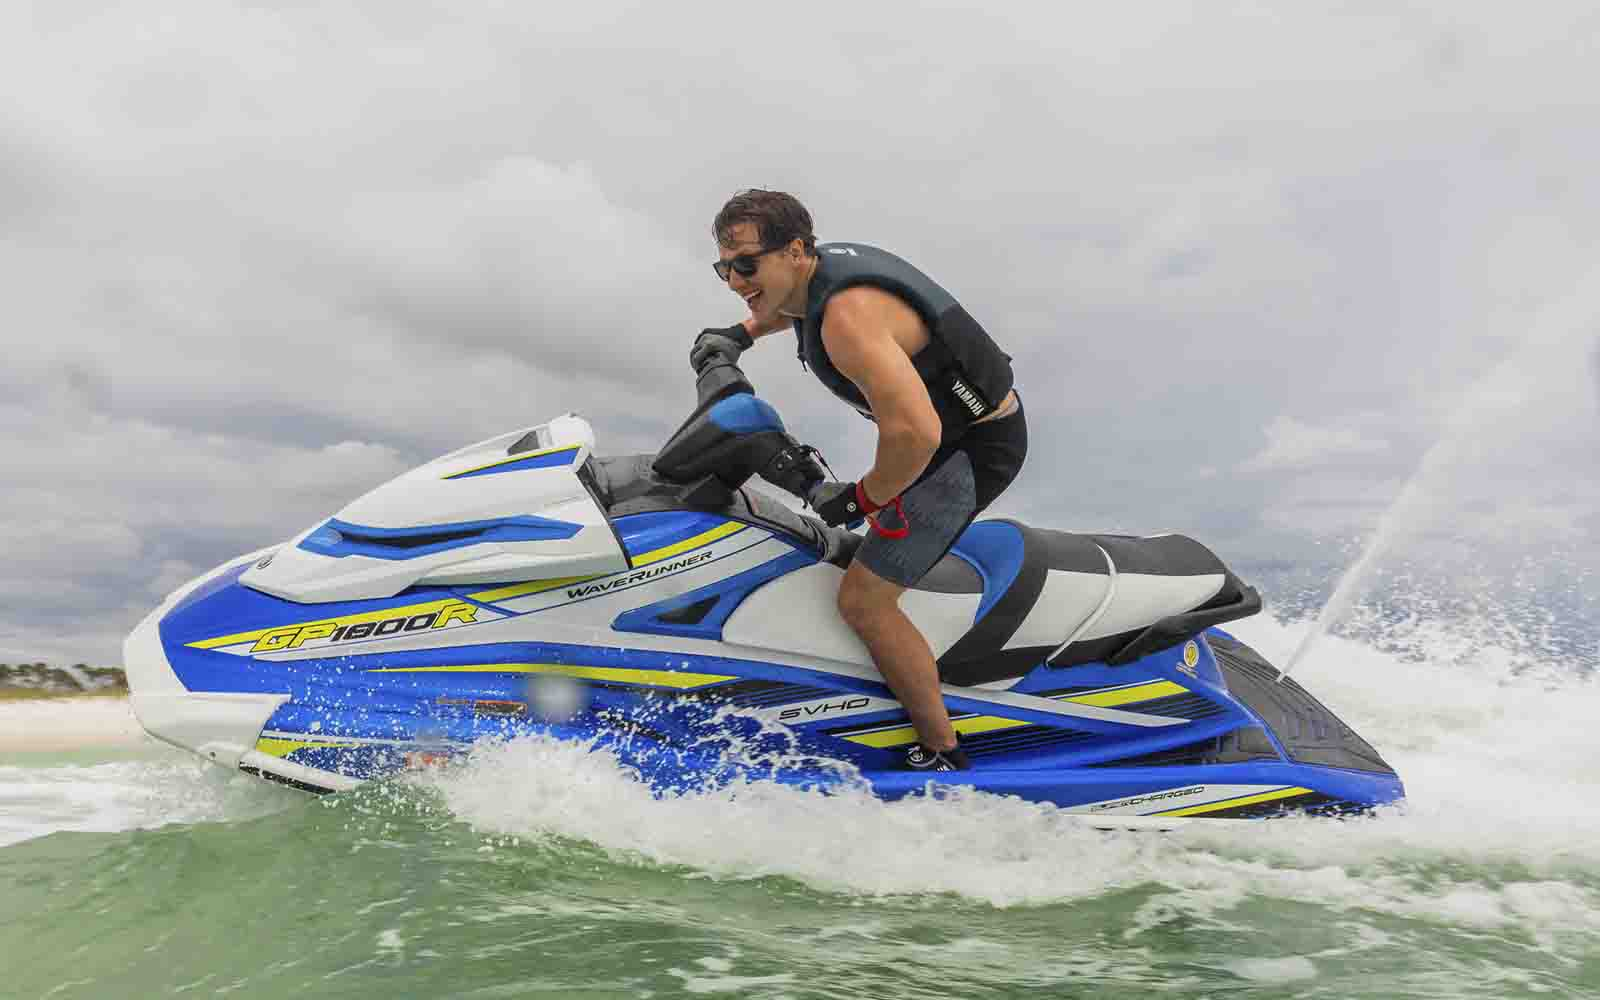 Yamaha 2019 GP 1800 R 2 - boat shopping